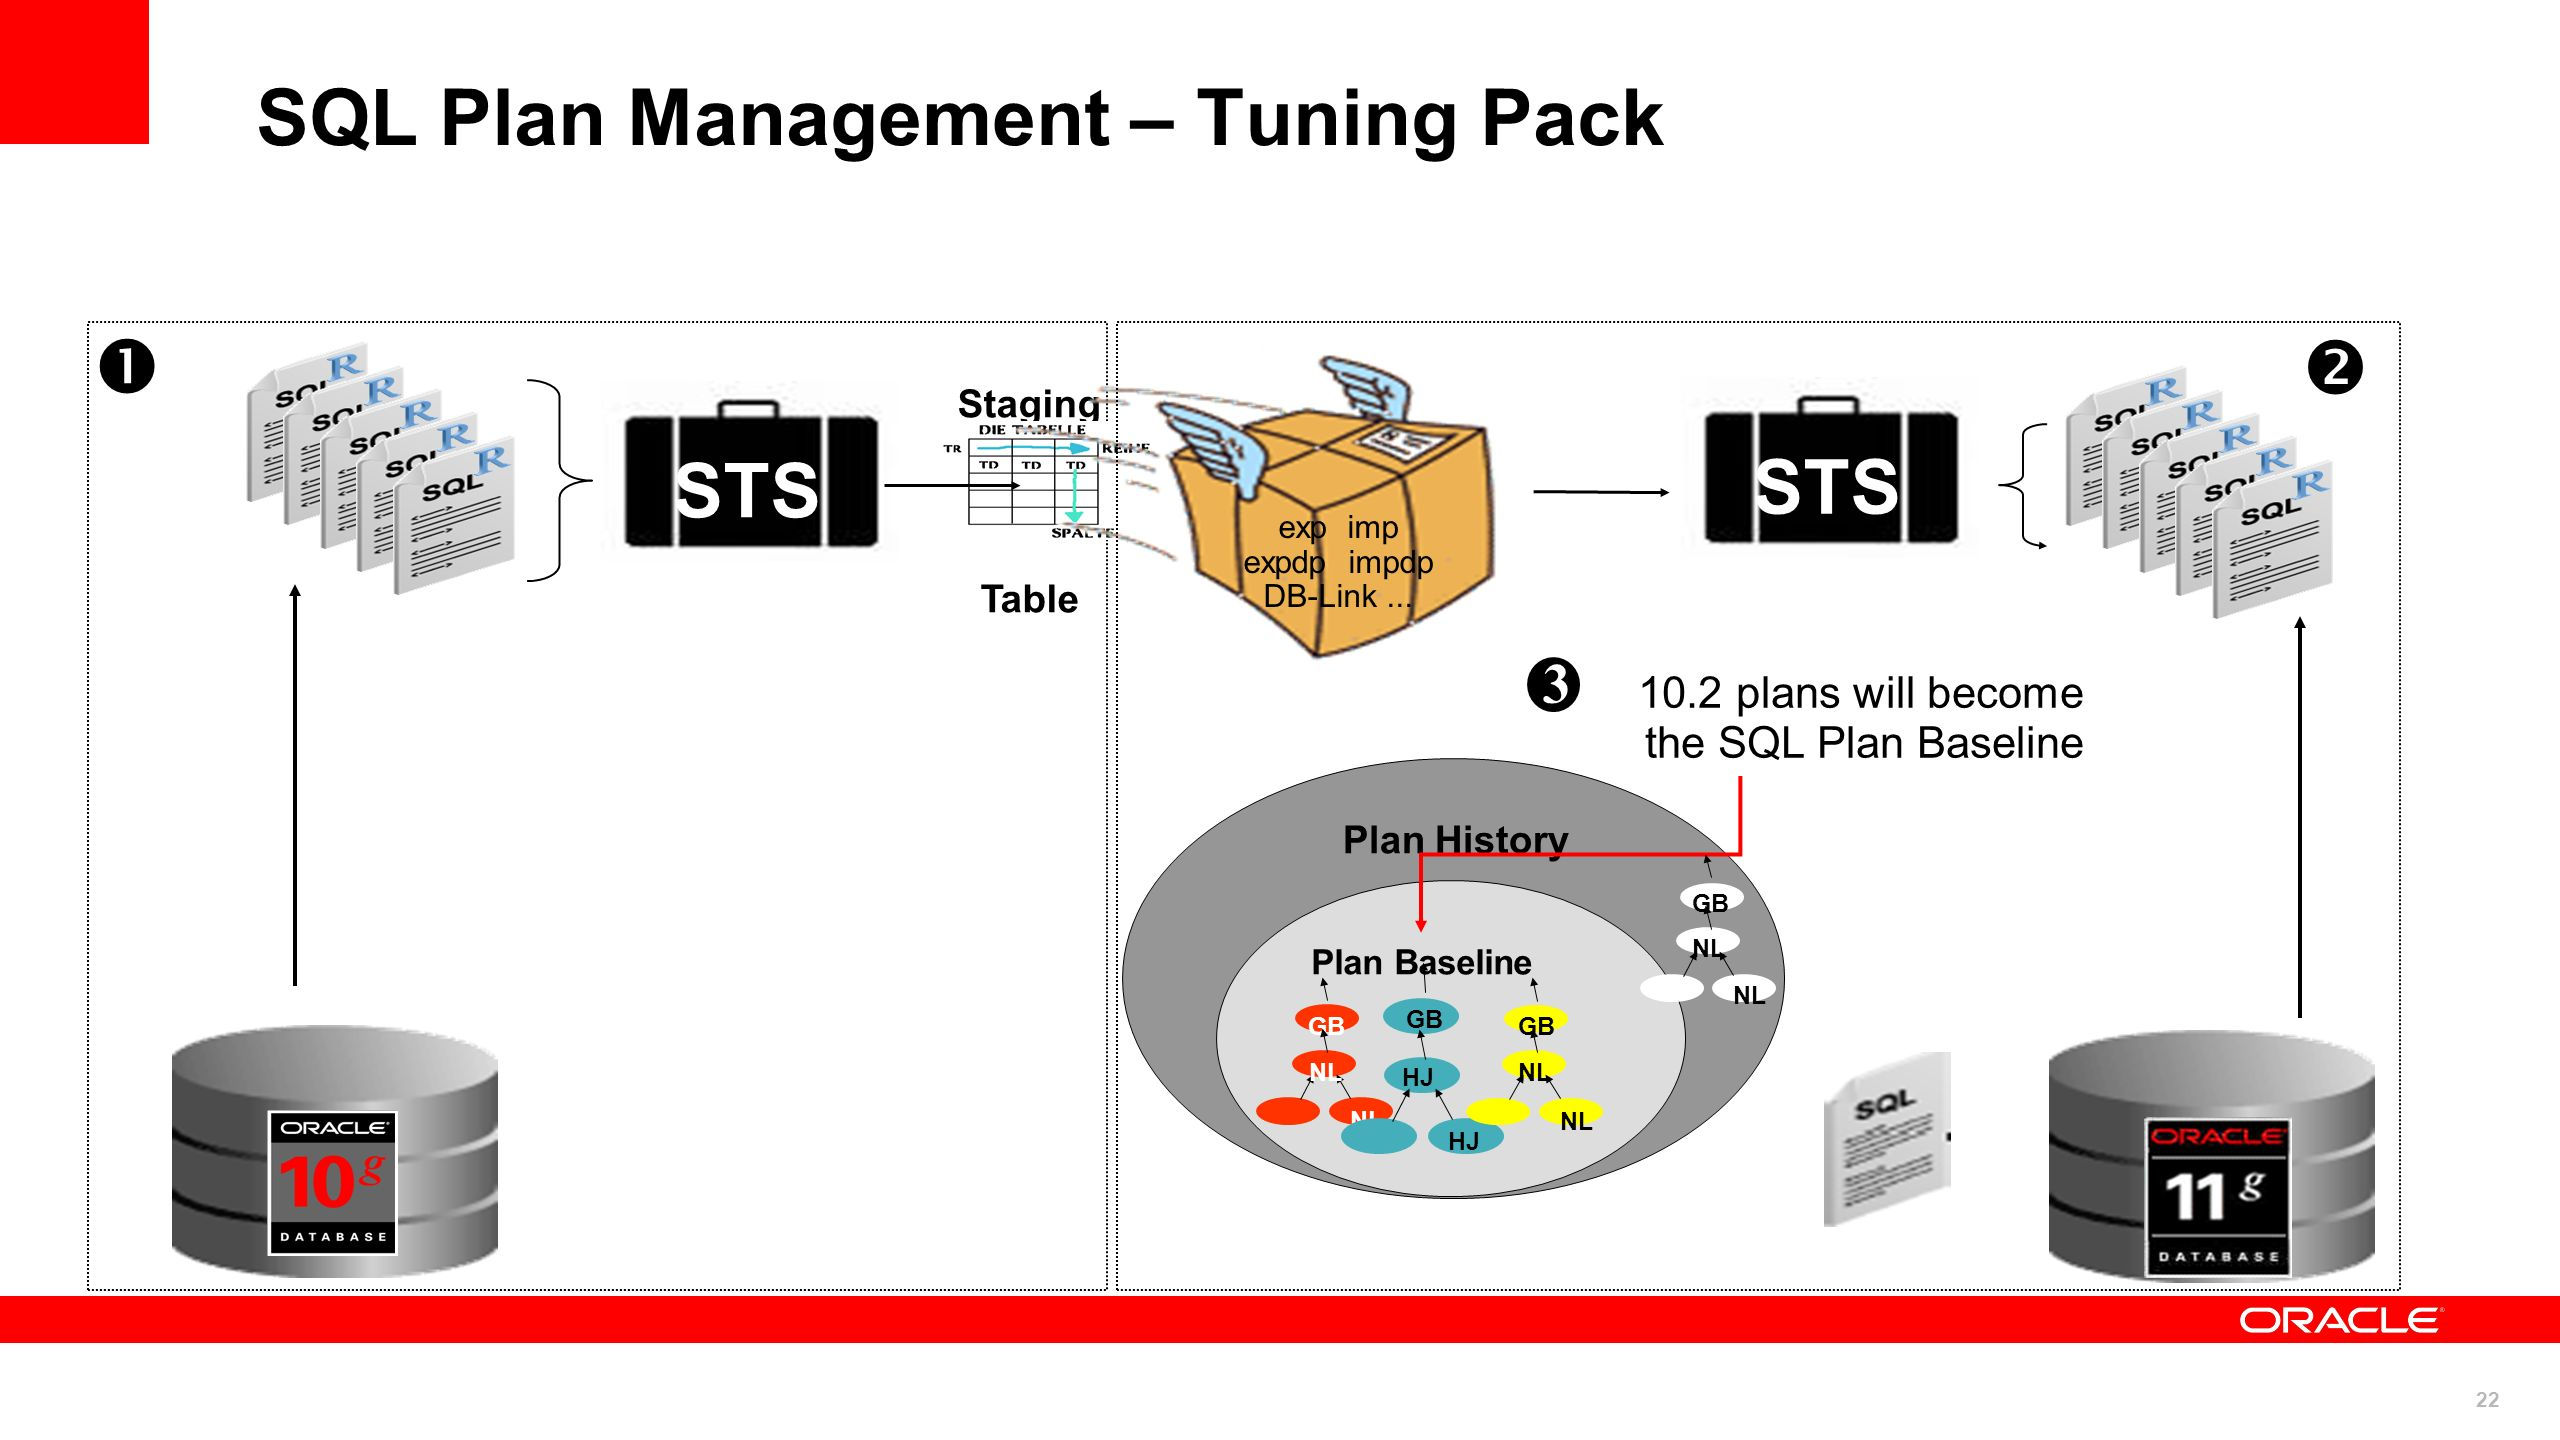 SQL Plan Management – Tuning Pack